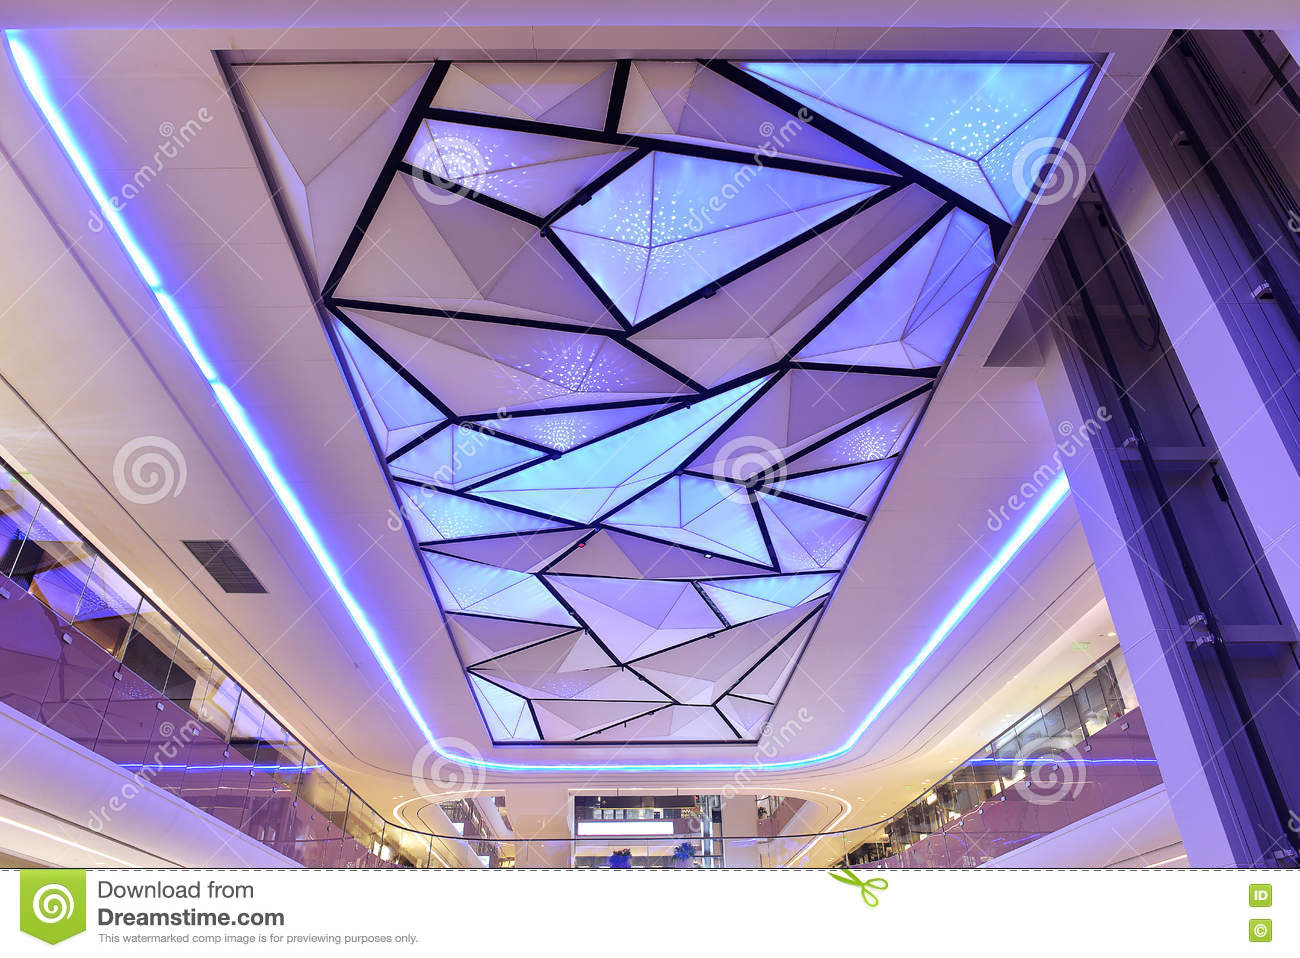 Led ceiling of commercial building